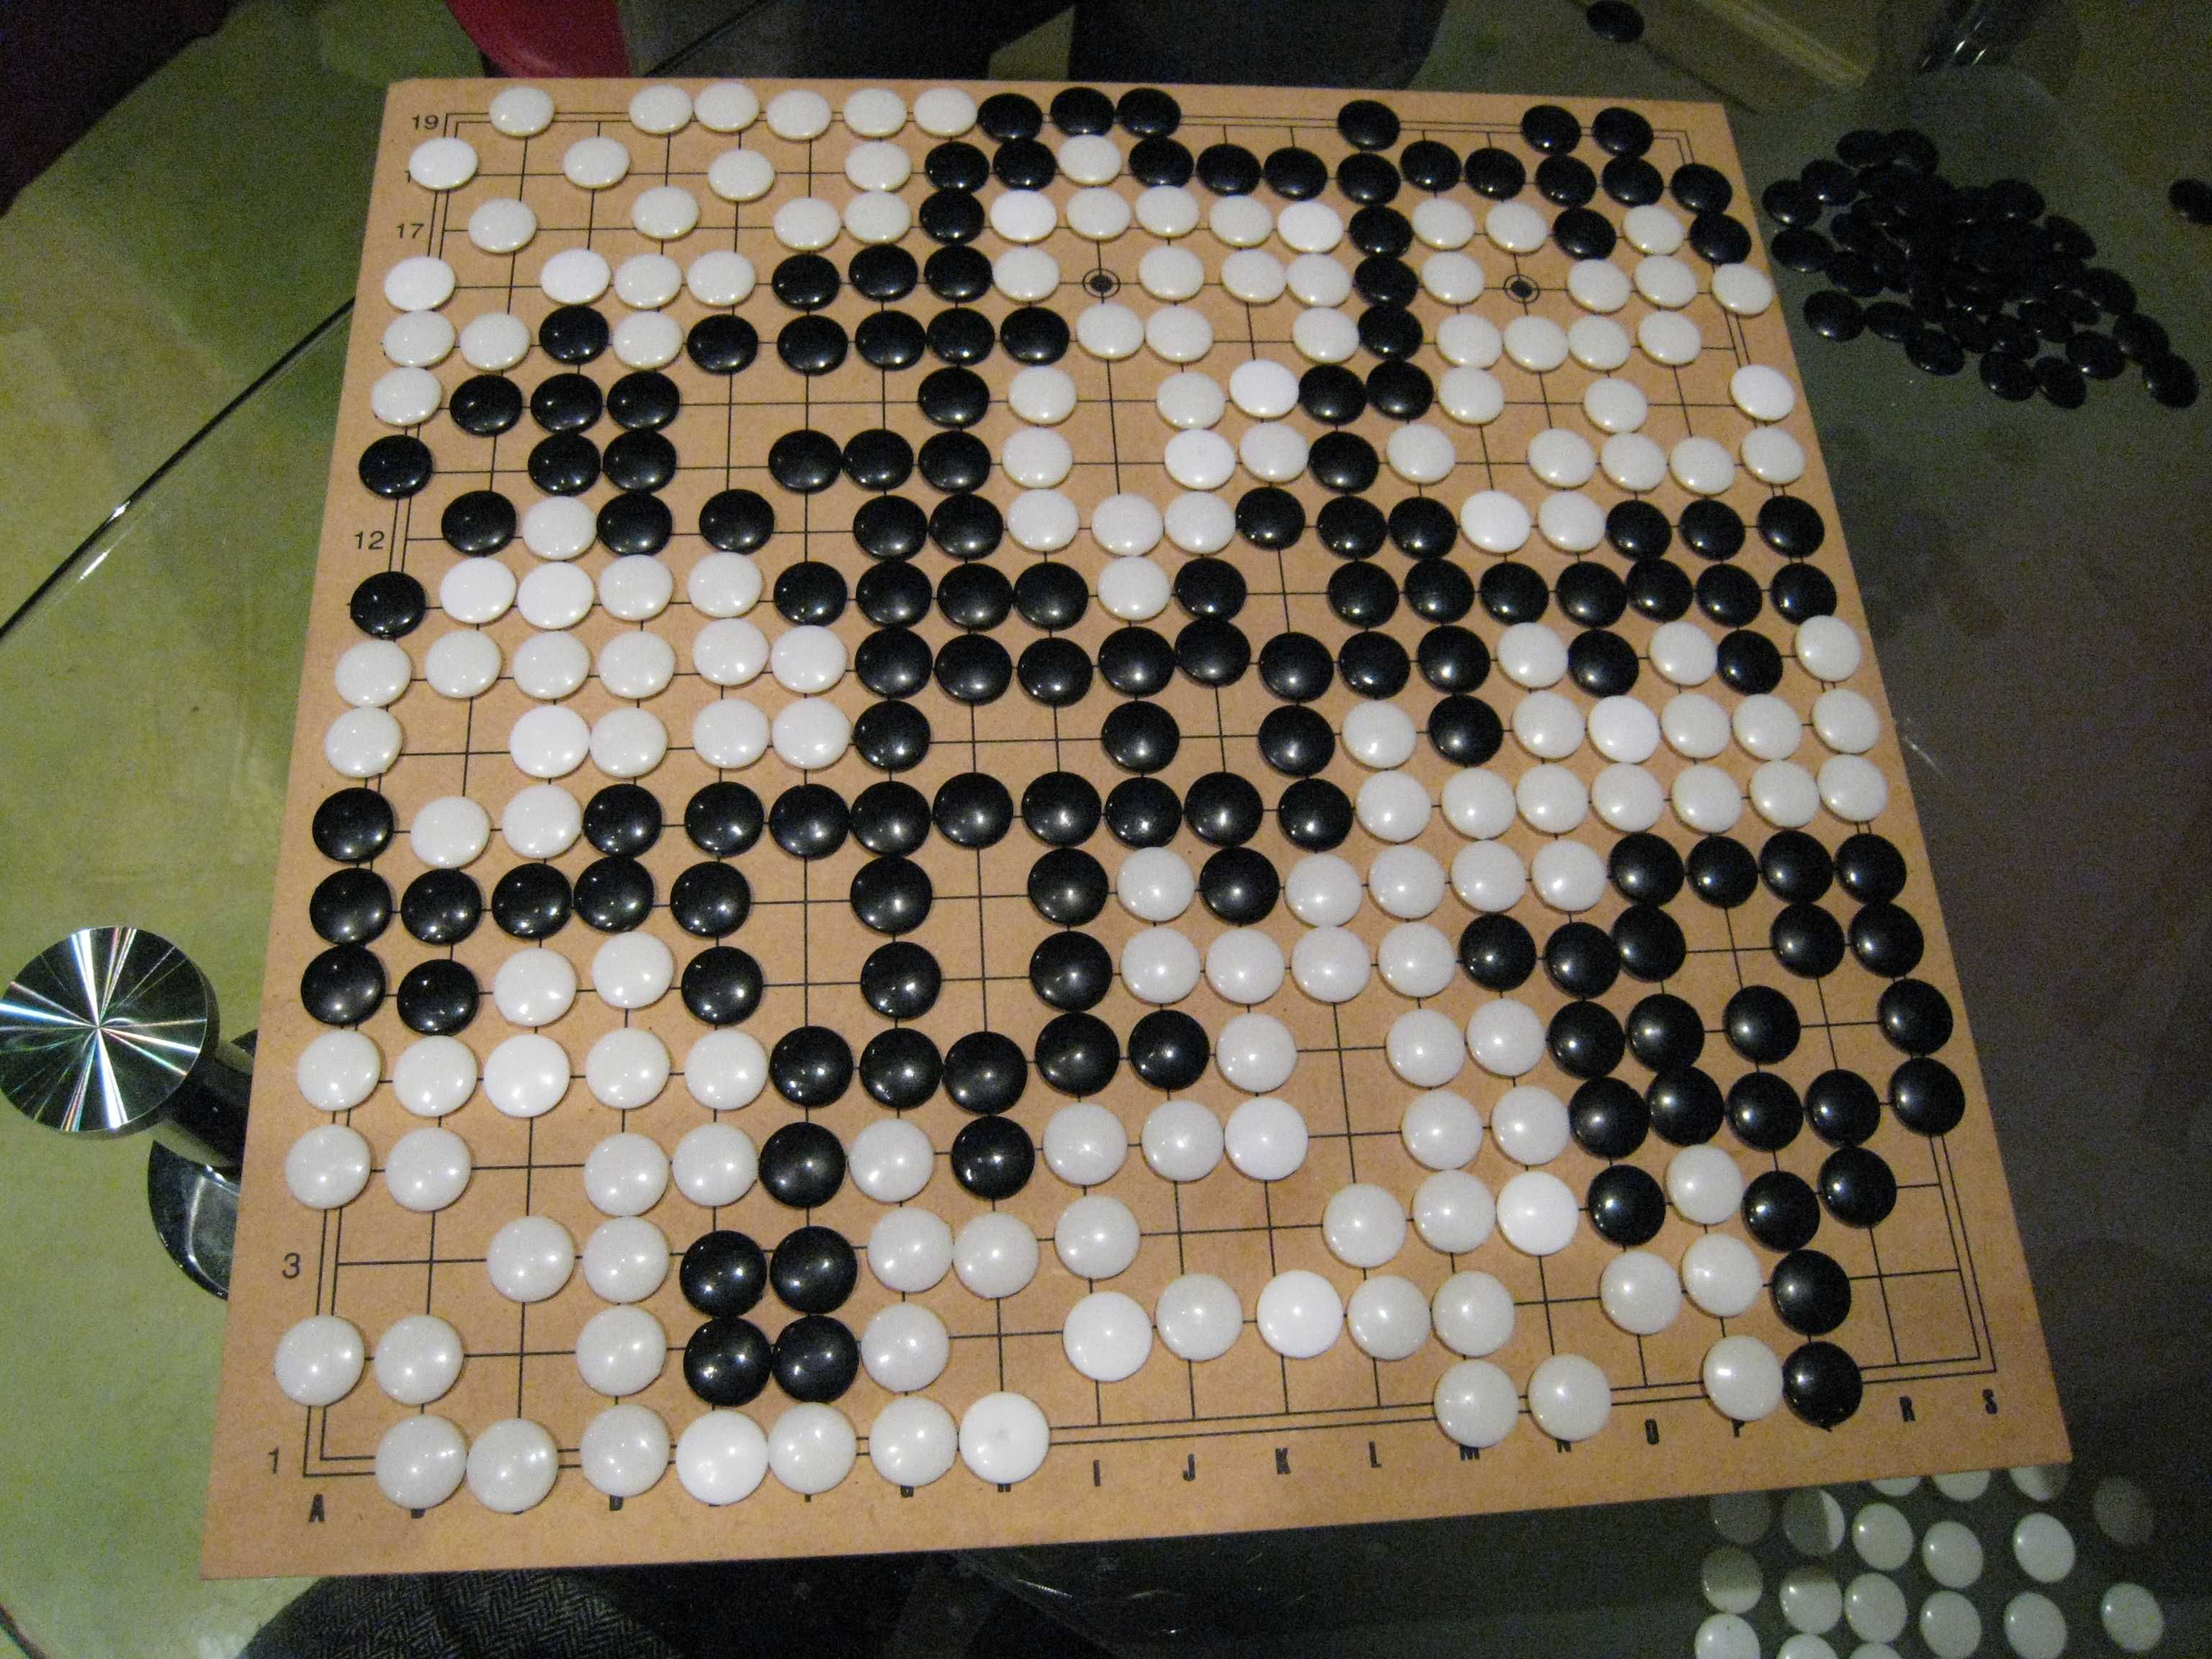 The board for the game Go, with circular black and white pieces on a grid